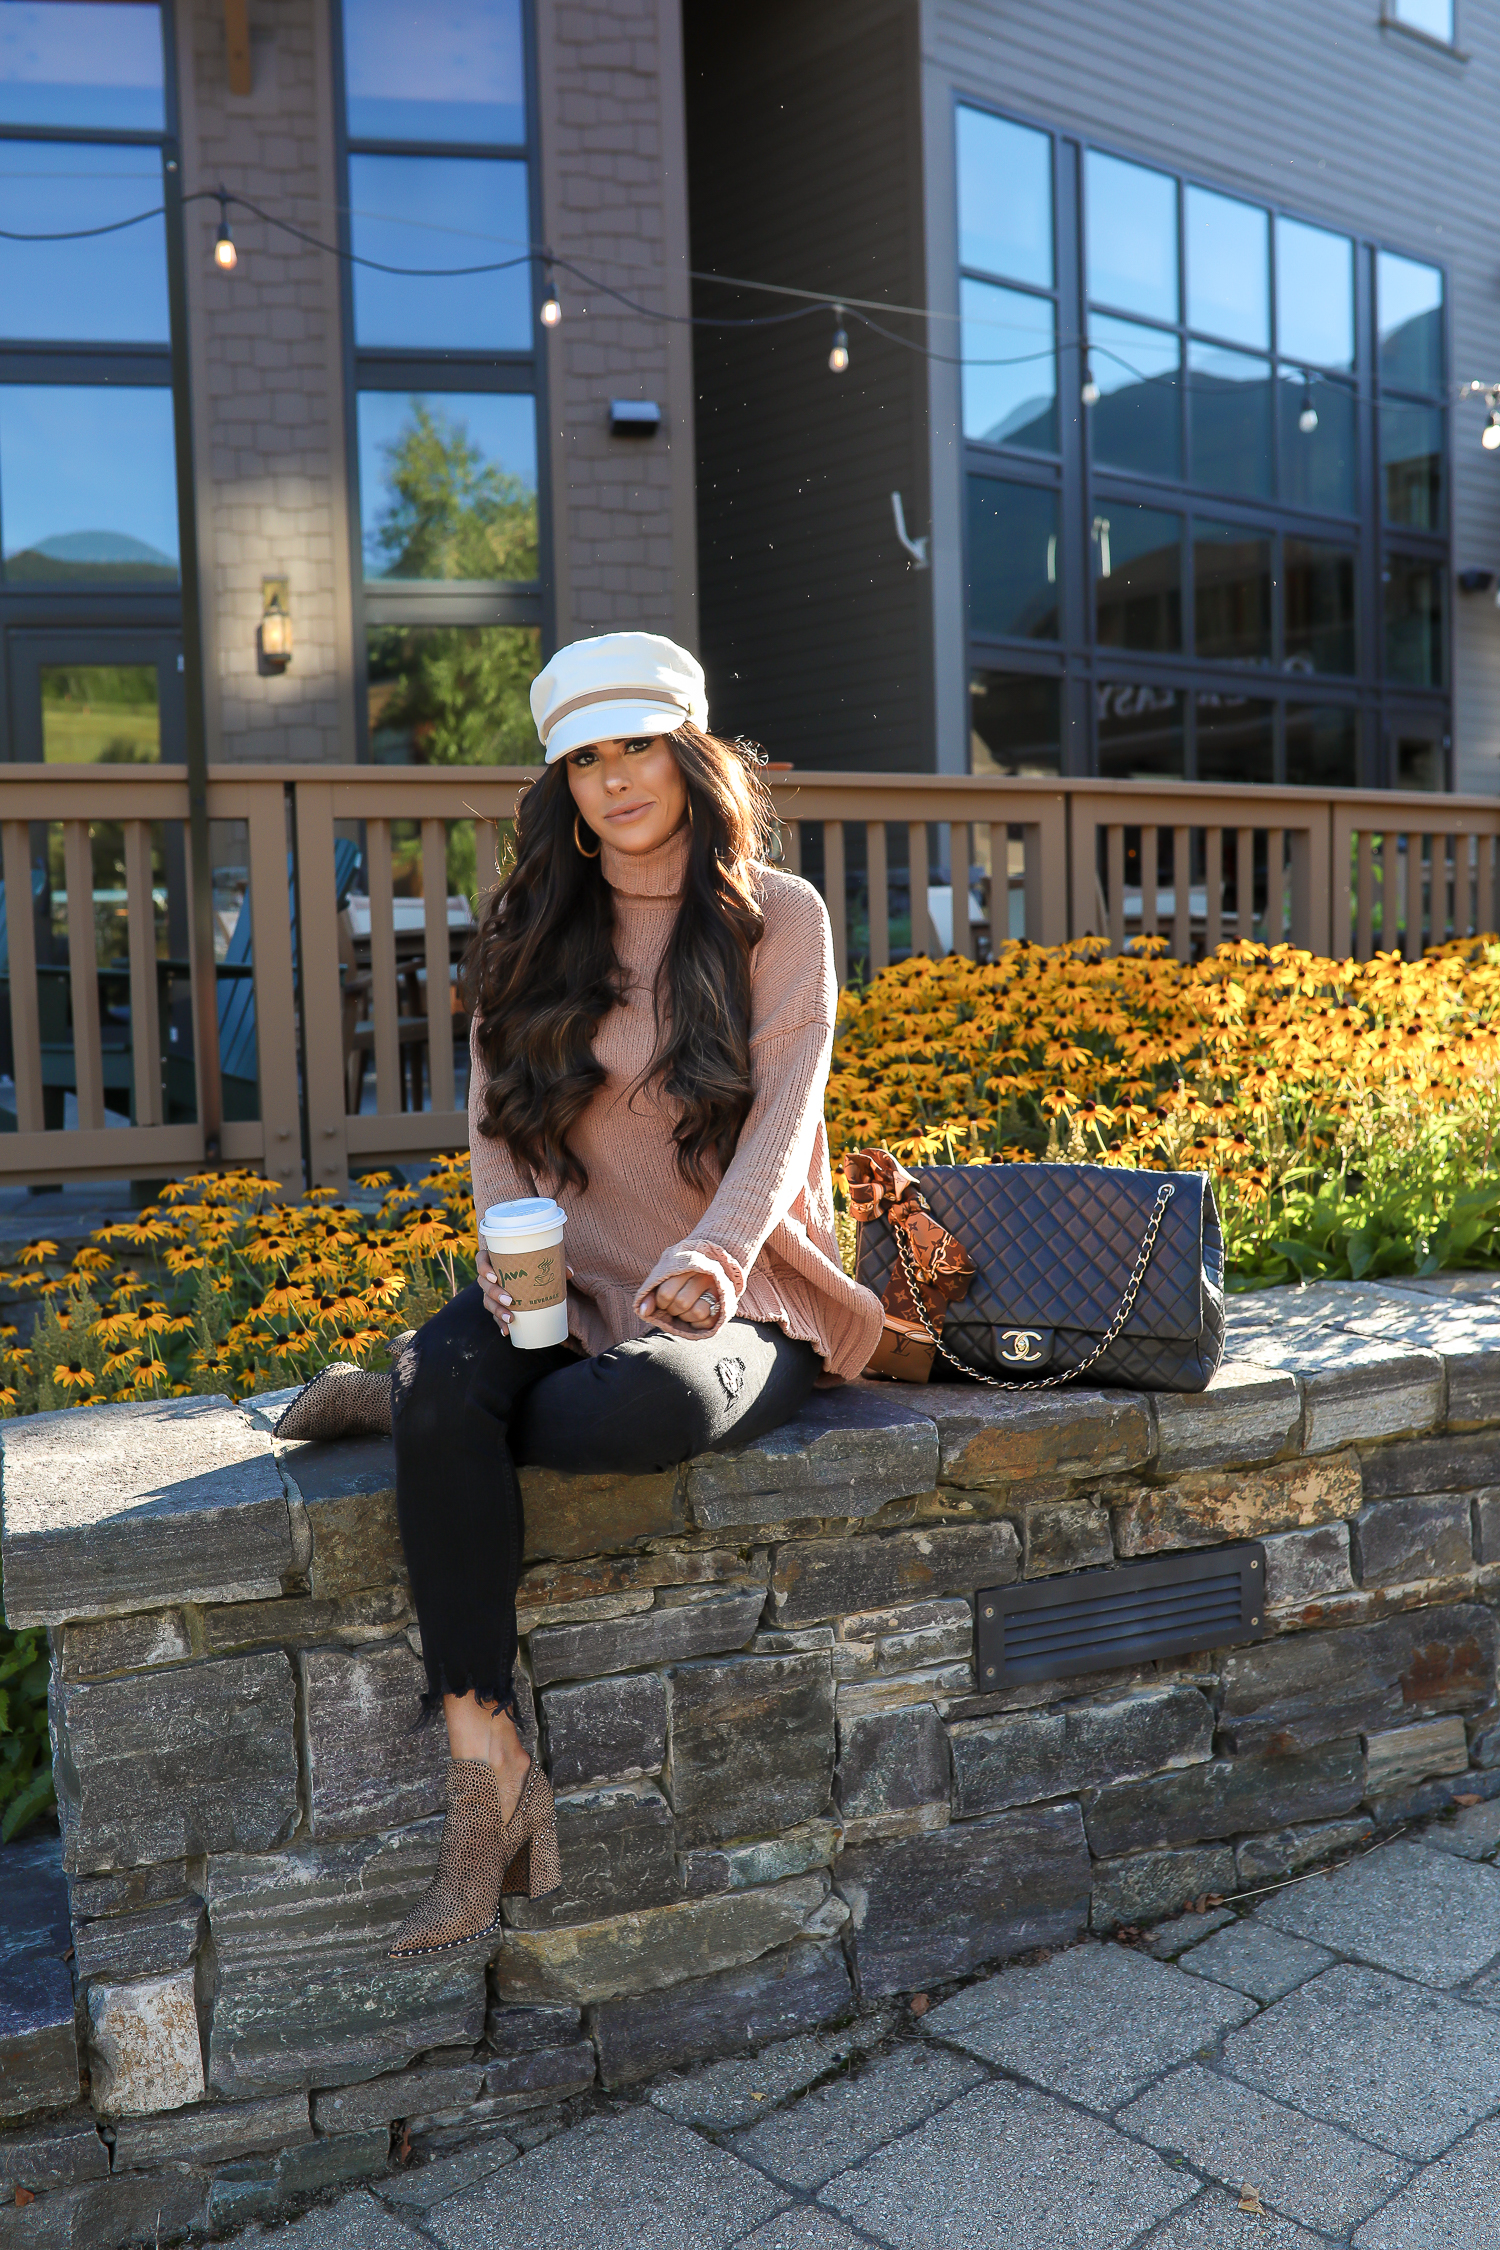 fall fashion outfits pinterest 2019, chanel airlines tote XXL bag black, anthropologie white tan baker boy cap, aerie chenille turtleneck sweater, stowe vermont review